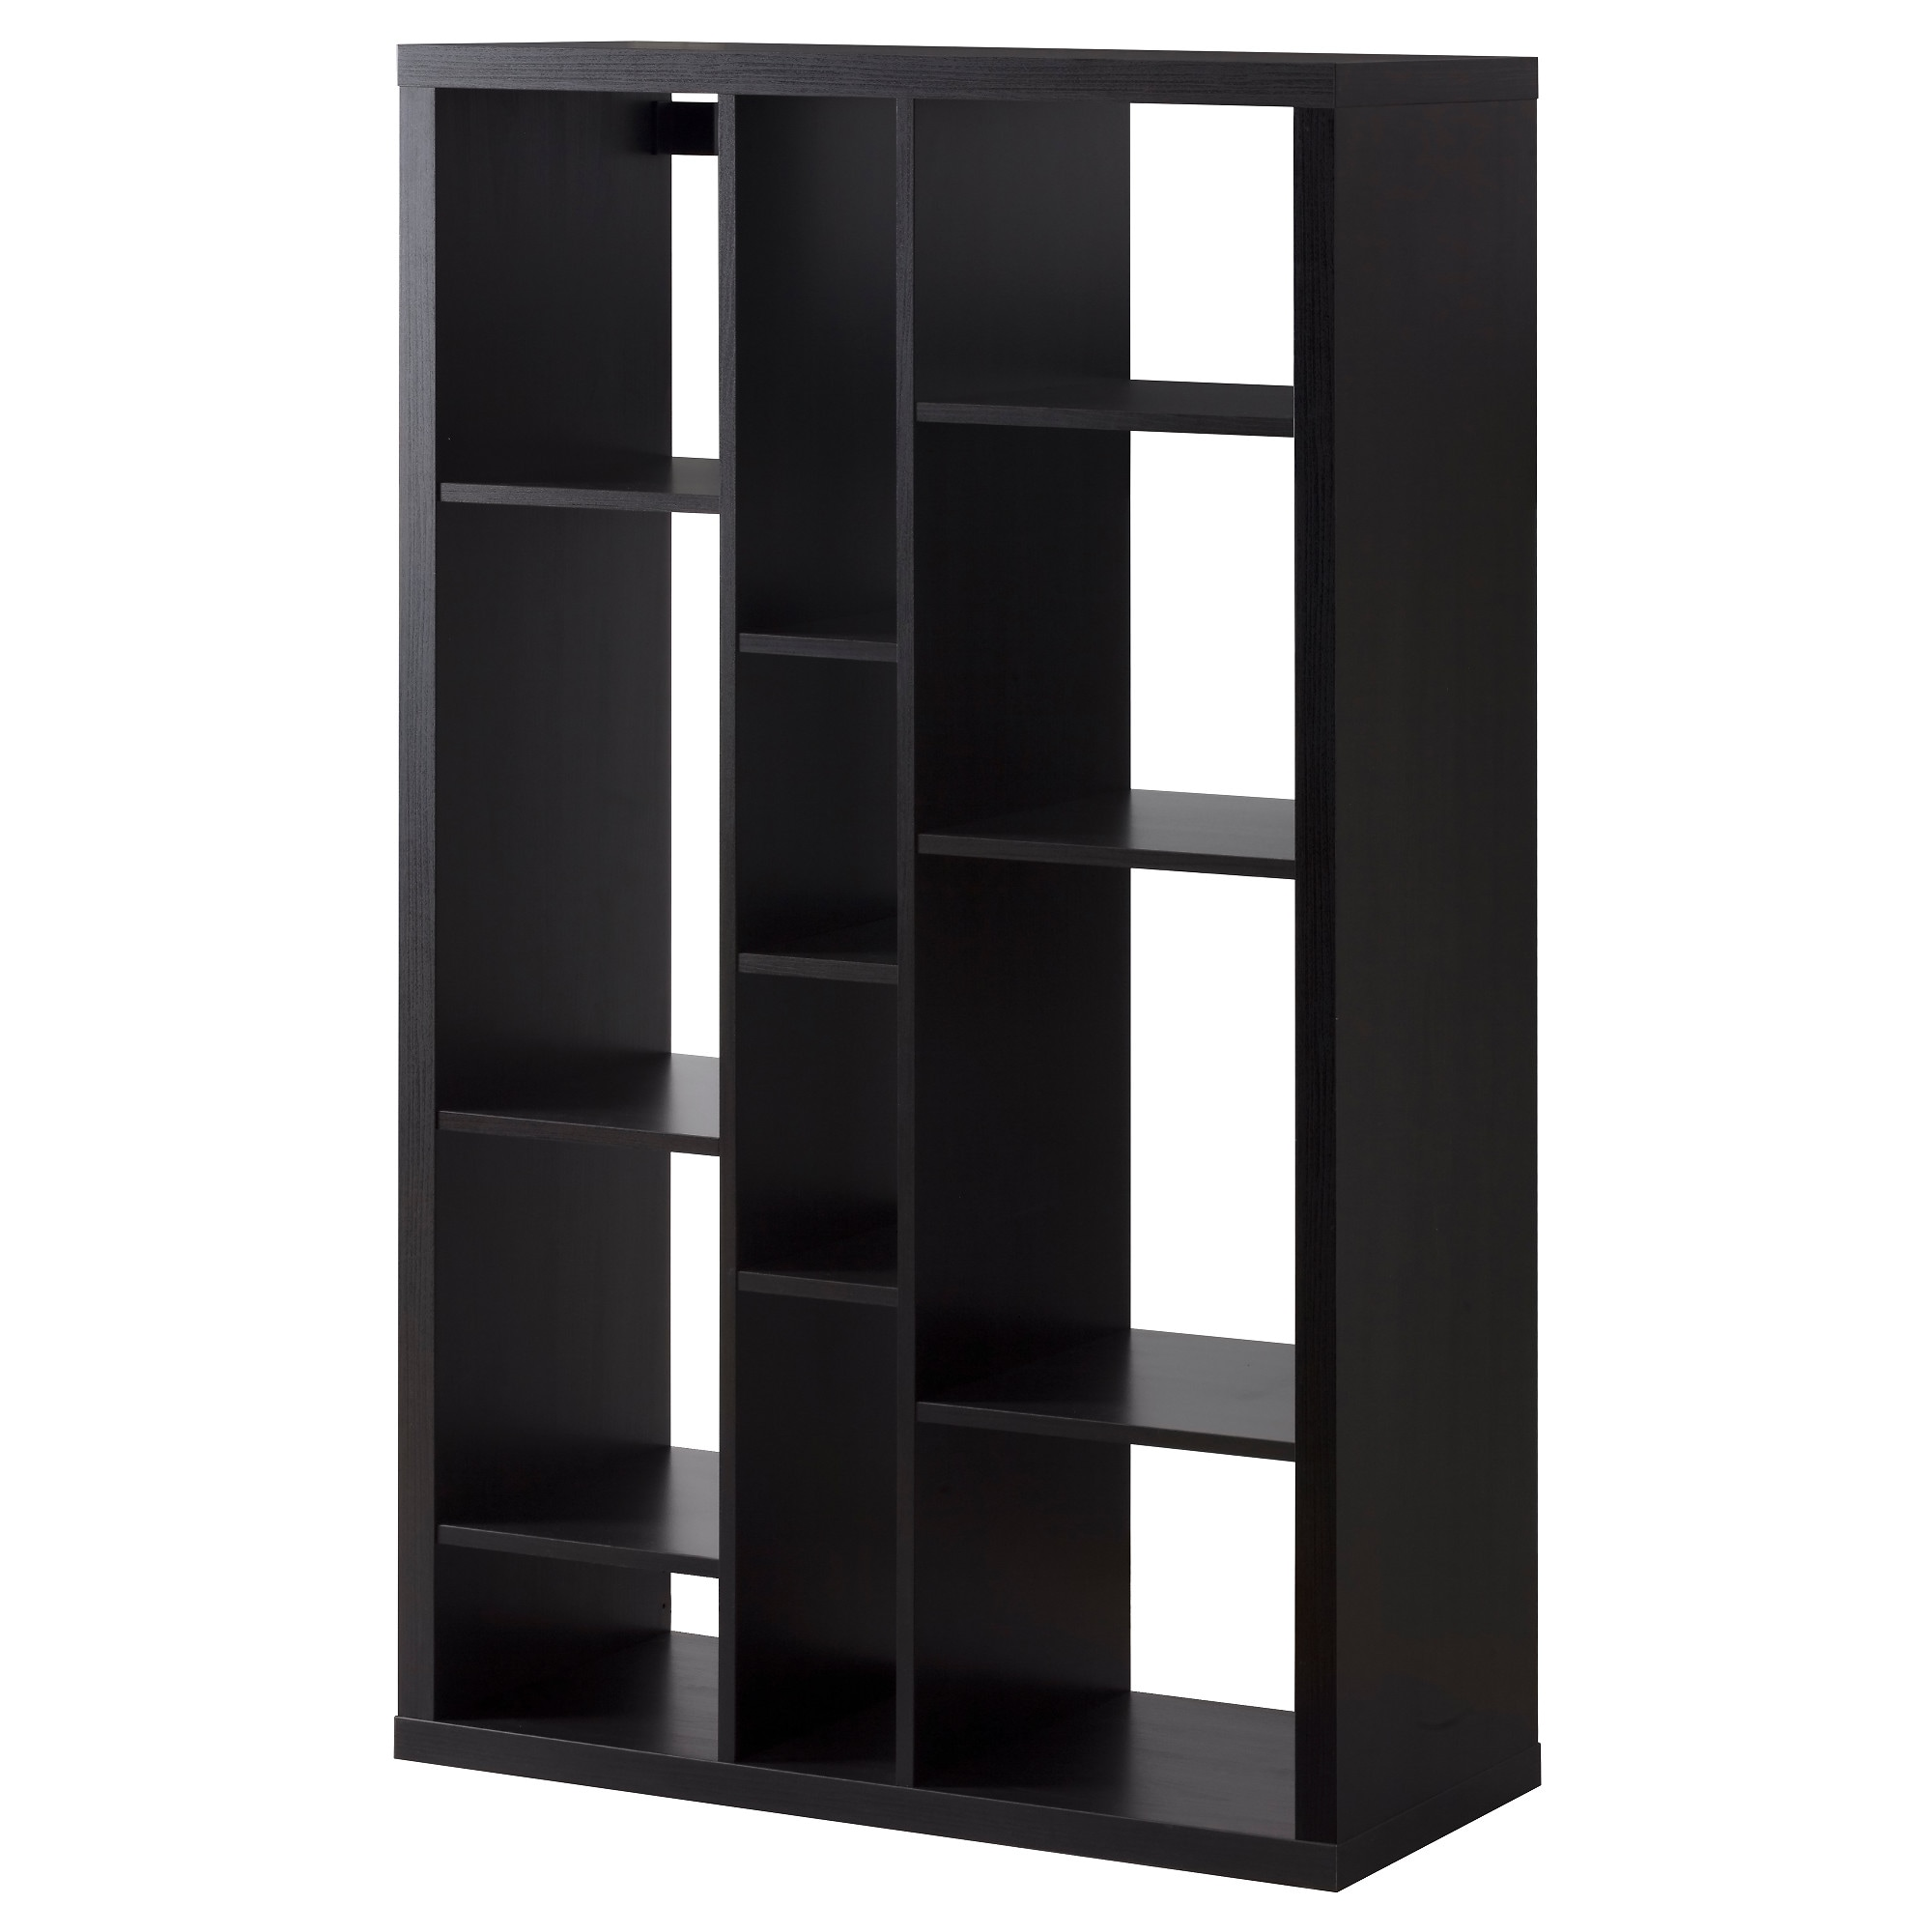 dimension expedit dimensions with dimension expedit ikea. Black Bedroom Furniture Sets. Home Design Ideas